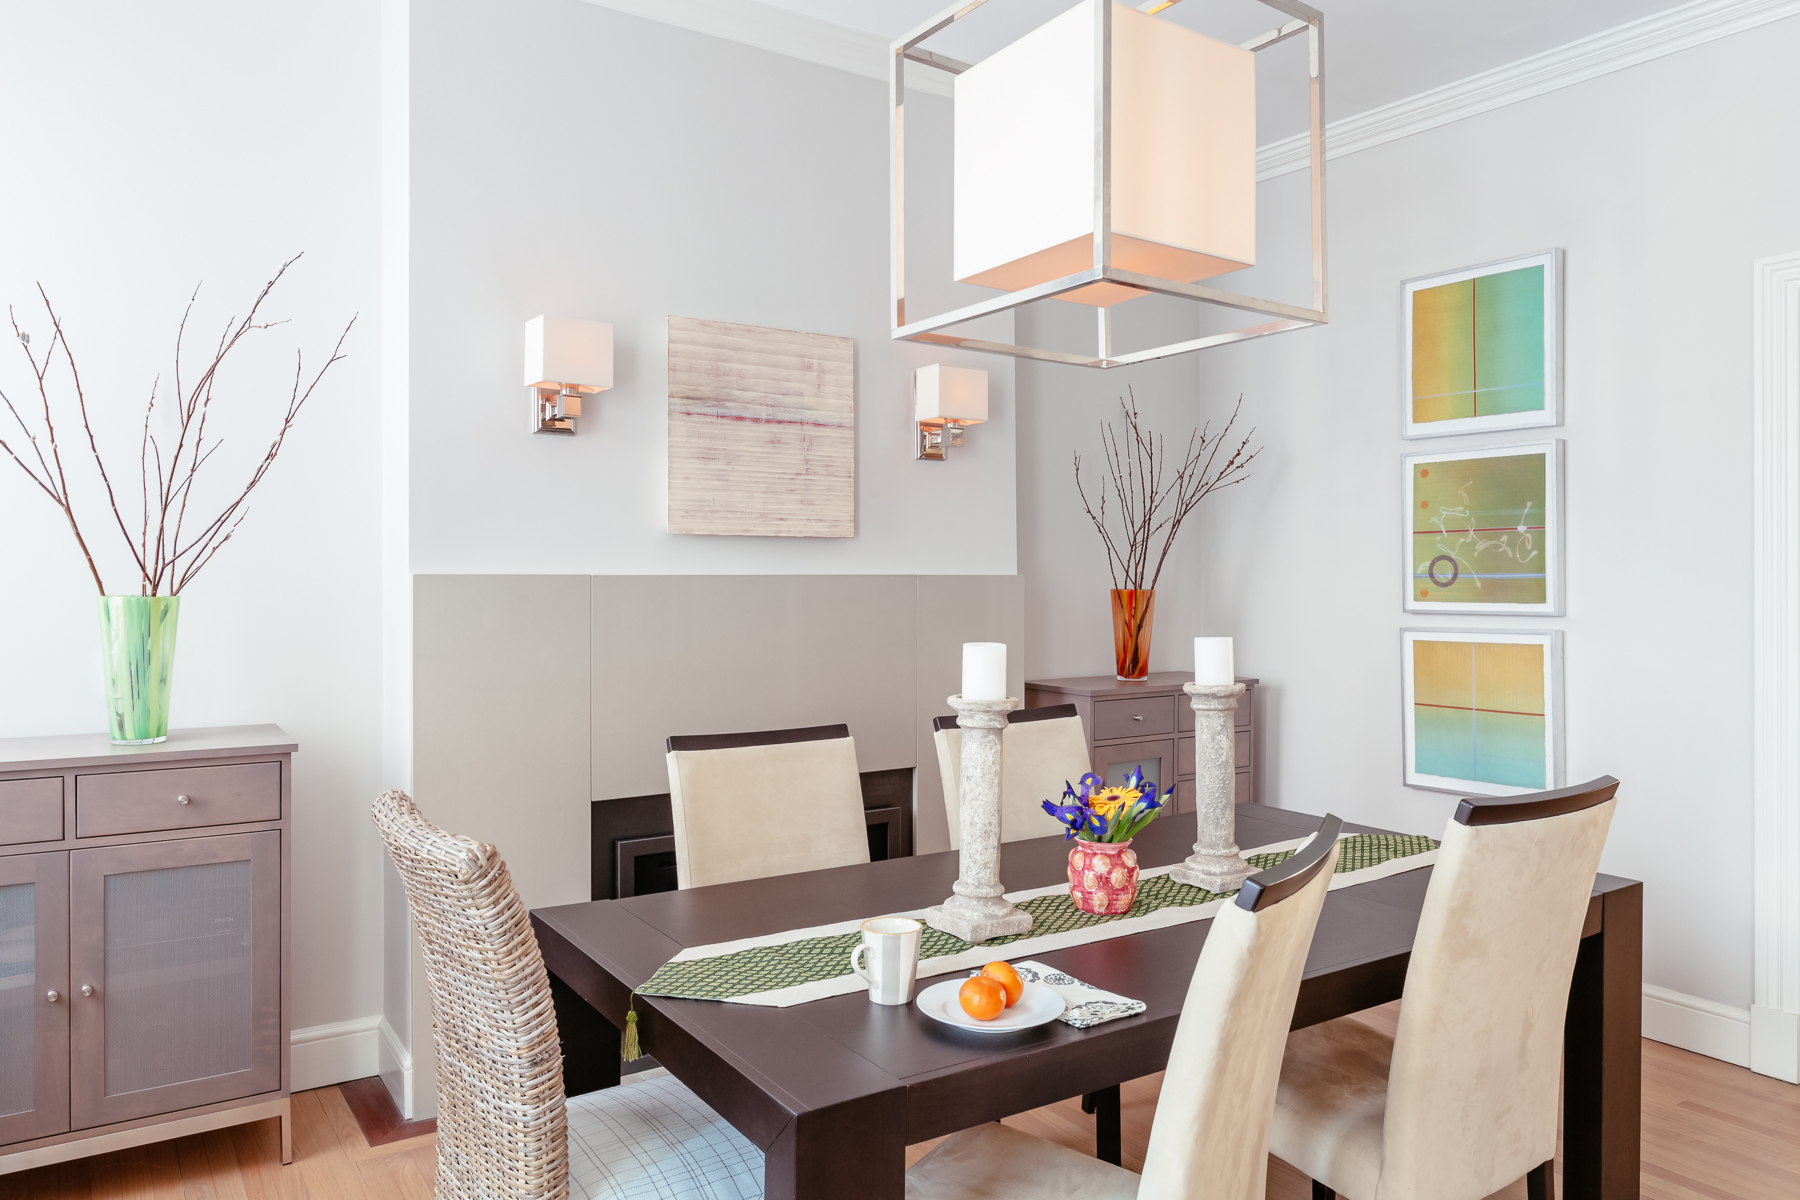 Dining room, Brookline residence Painting by SUSAN SCHWALB / monoprints by PEGGY BADENHAUSEN